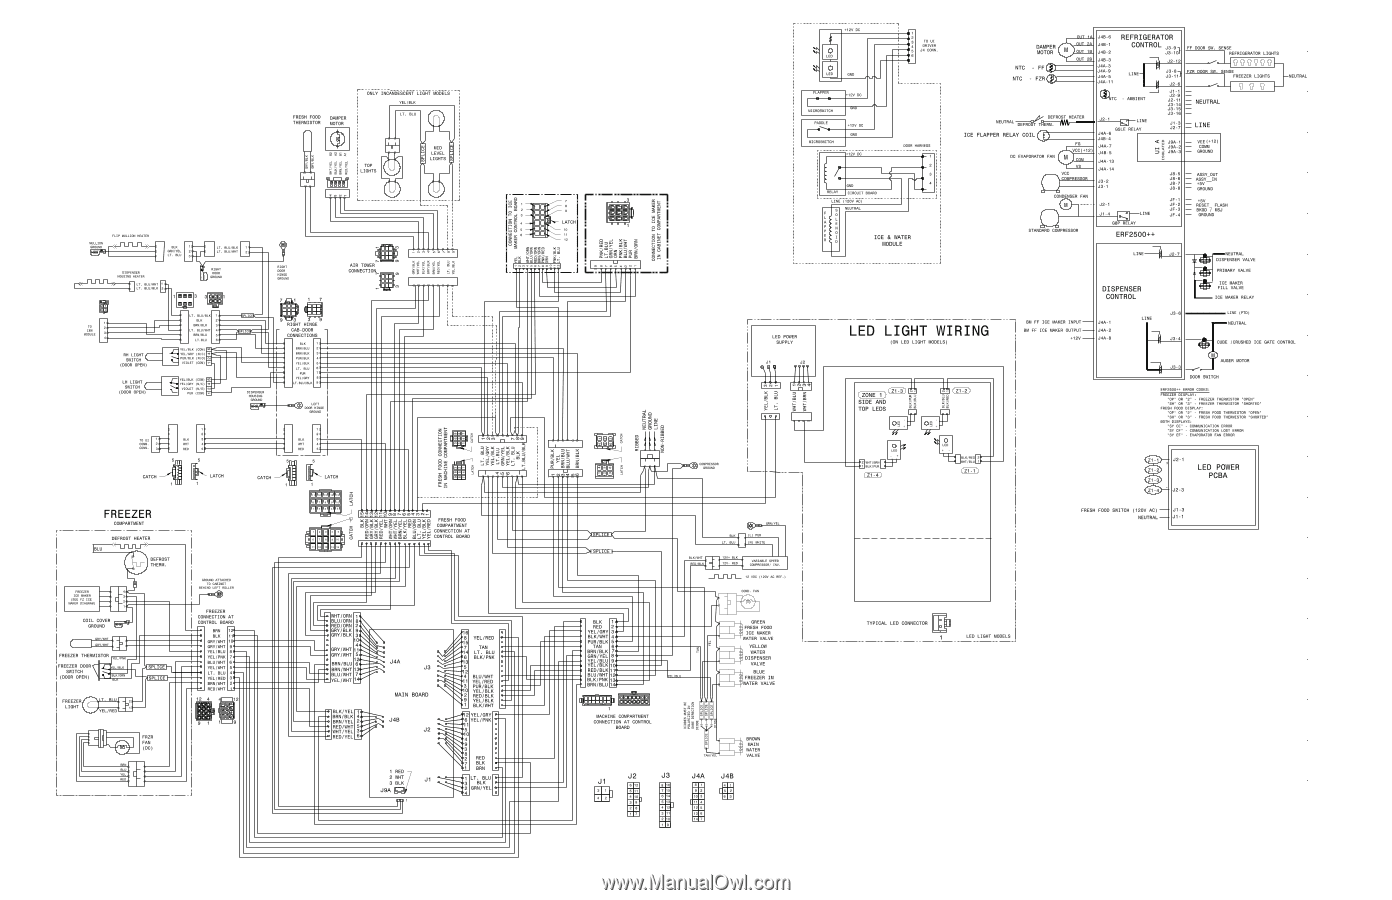 Commercial Well Pump Wiring Diagram Html